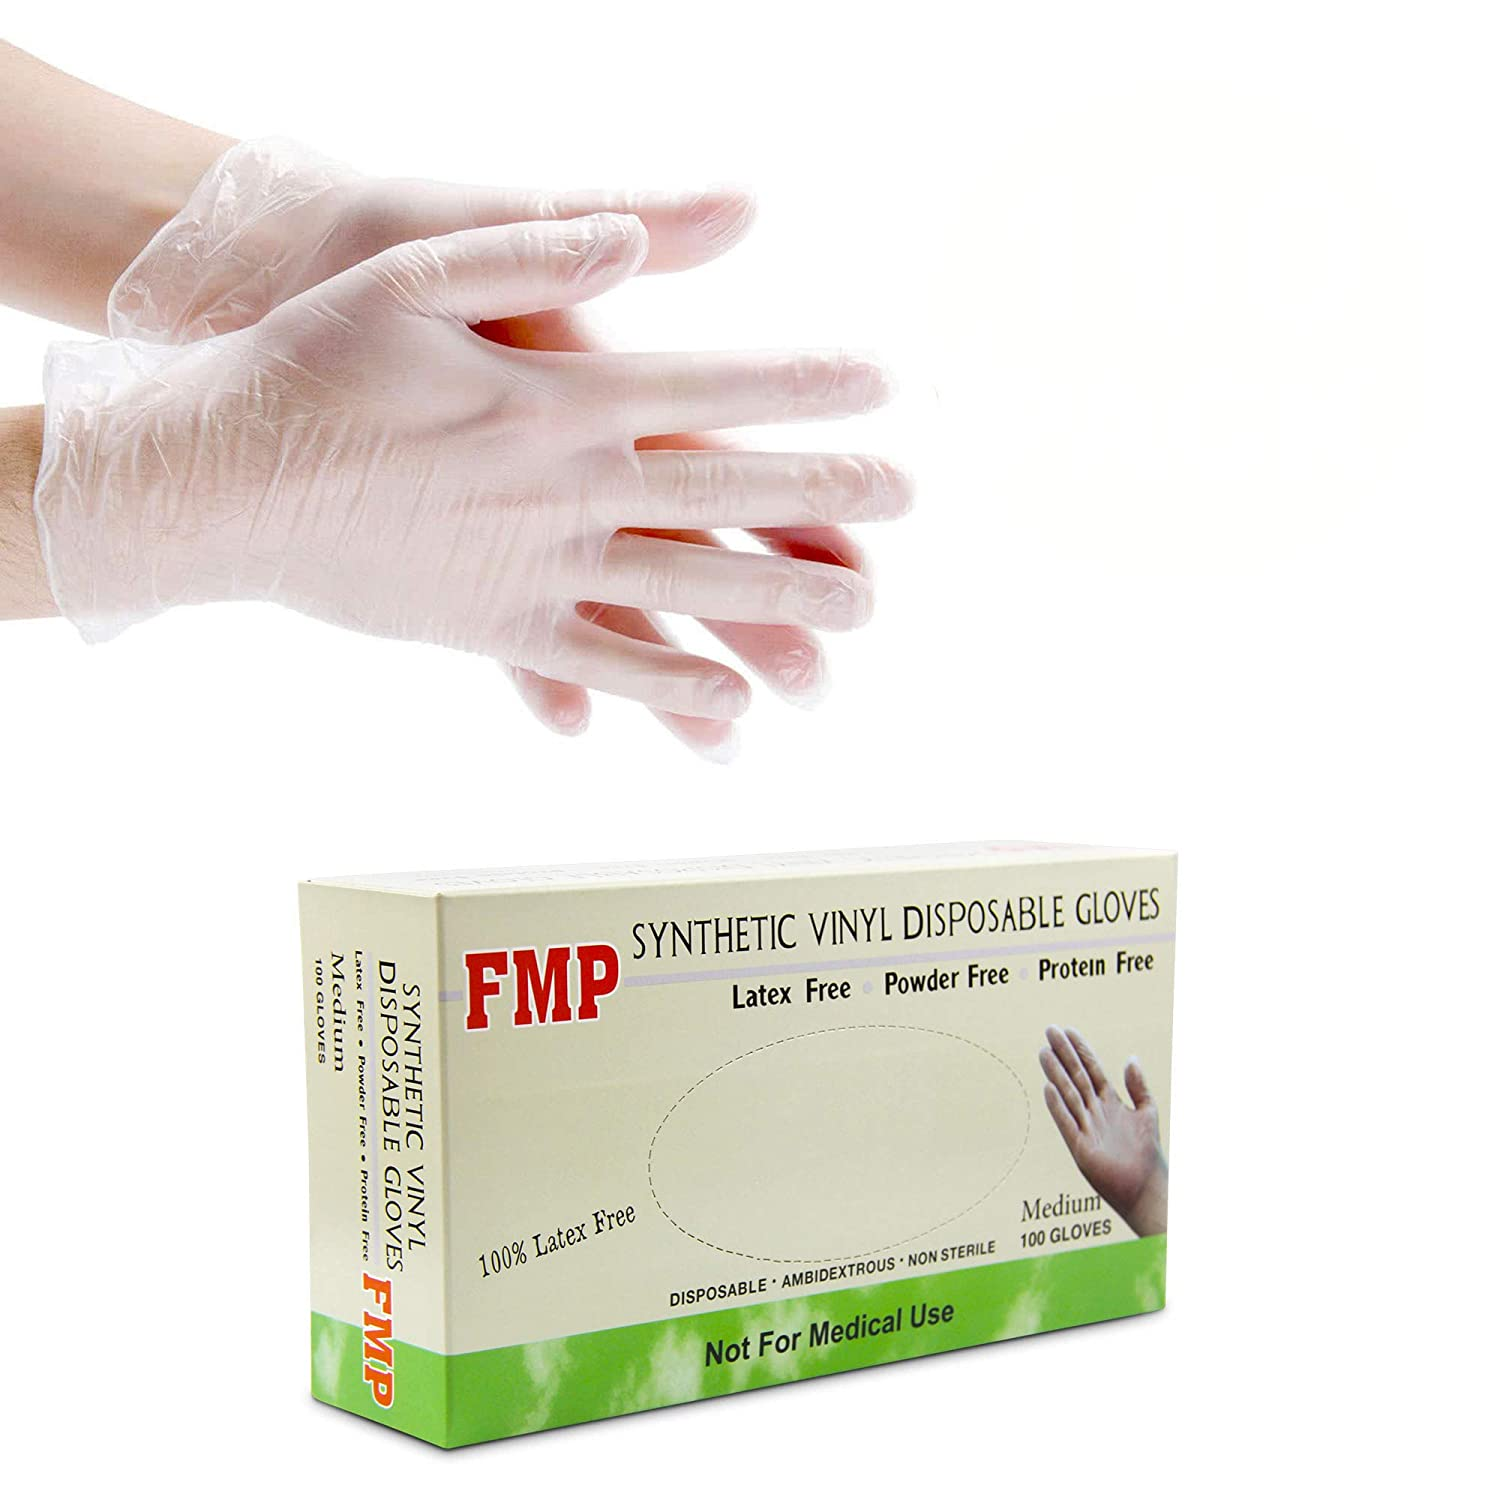 [100 Pack] Disposable Vinyl Gloves, Medium Size, Non-Sterile, Powder Free, Smooth Touch, Food Service Grade 71B2BZtpvmSL